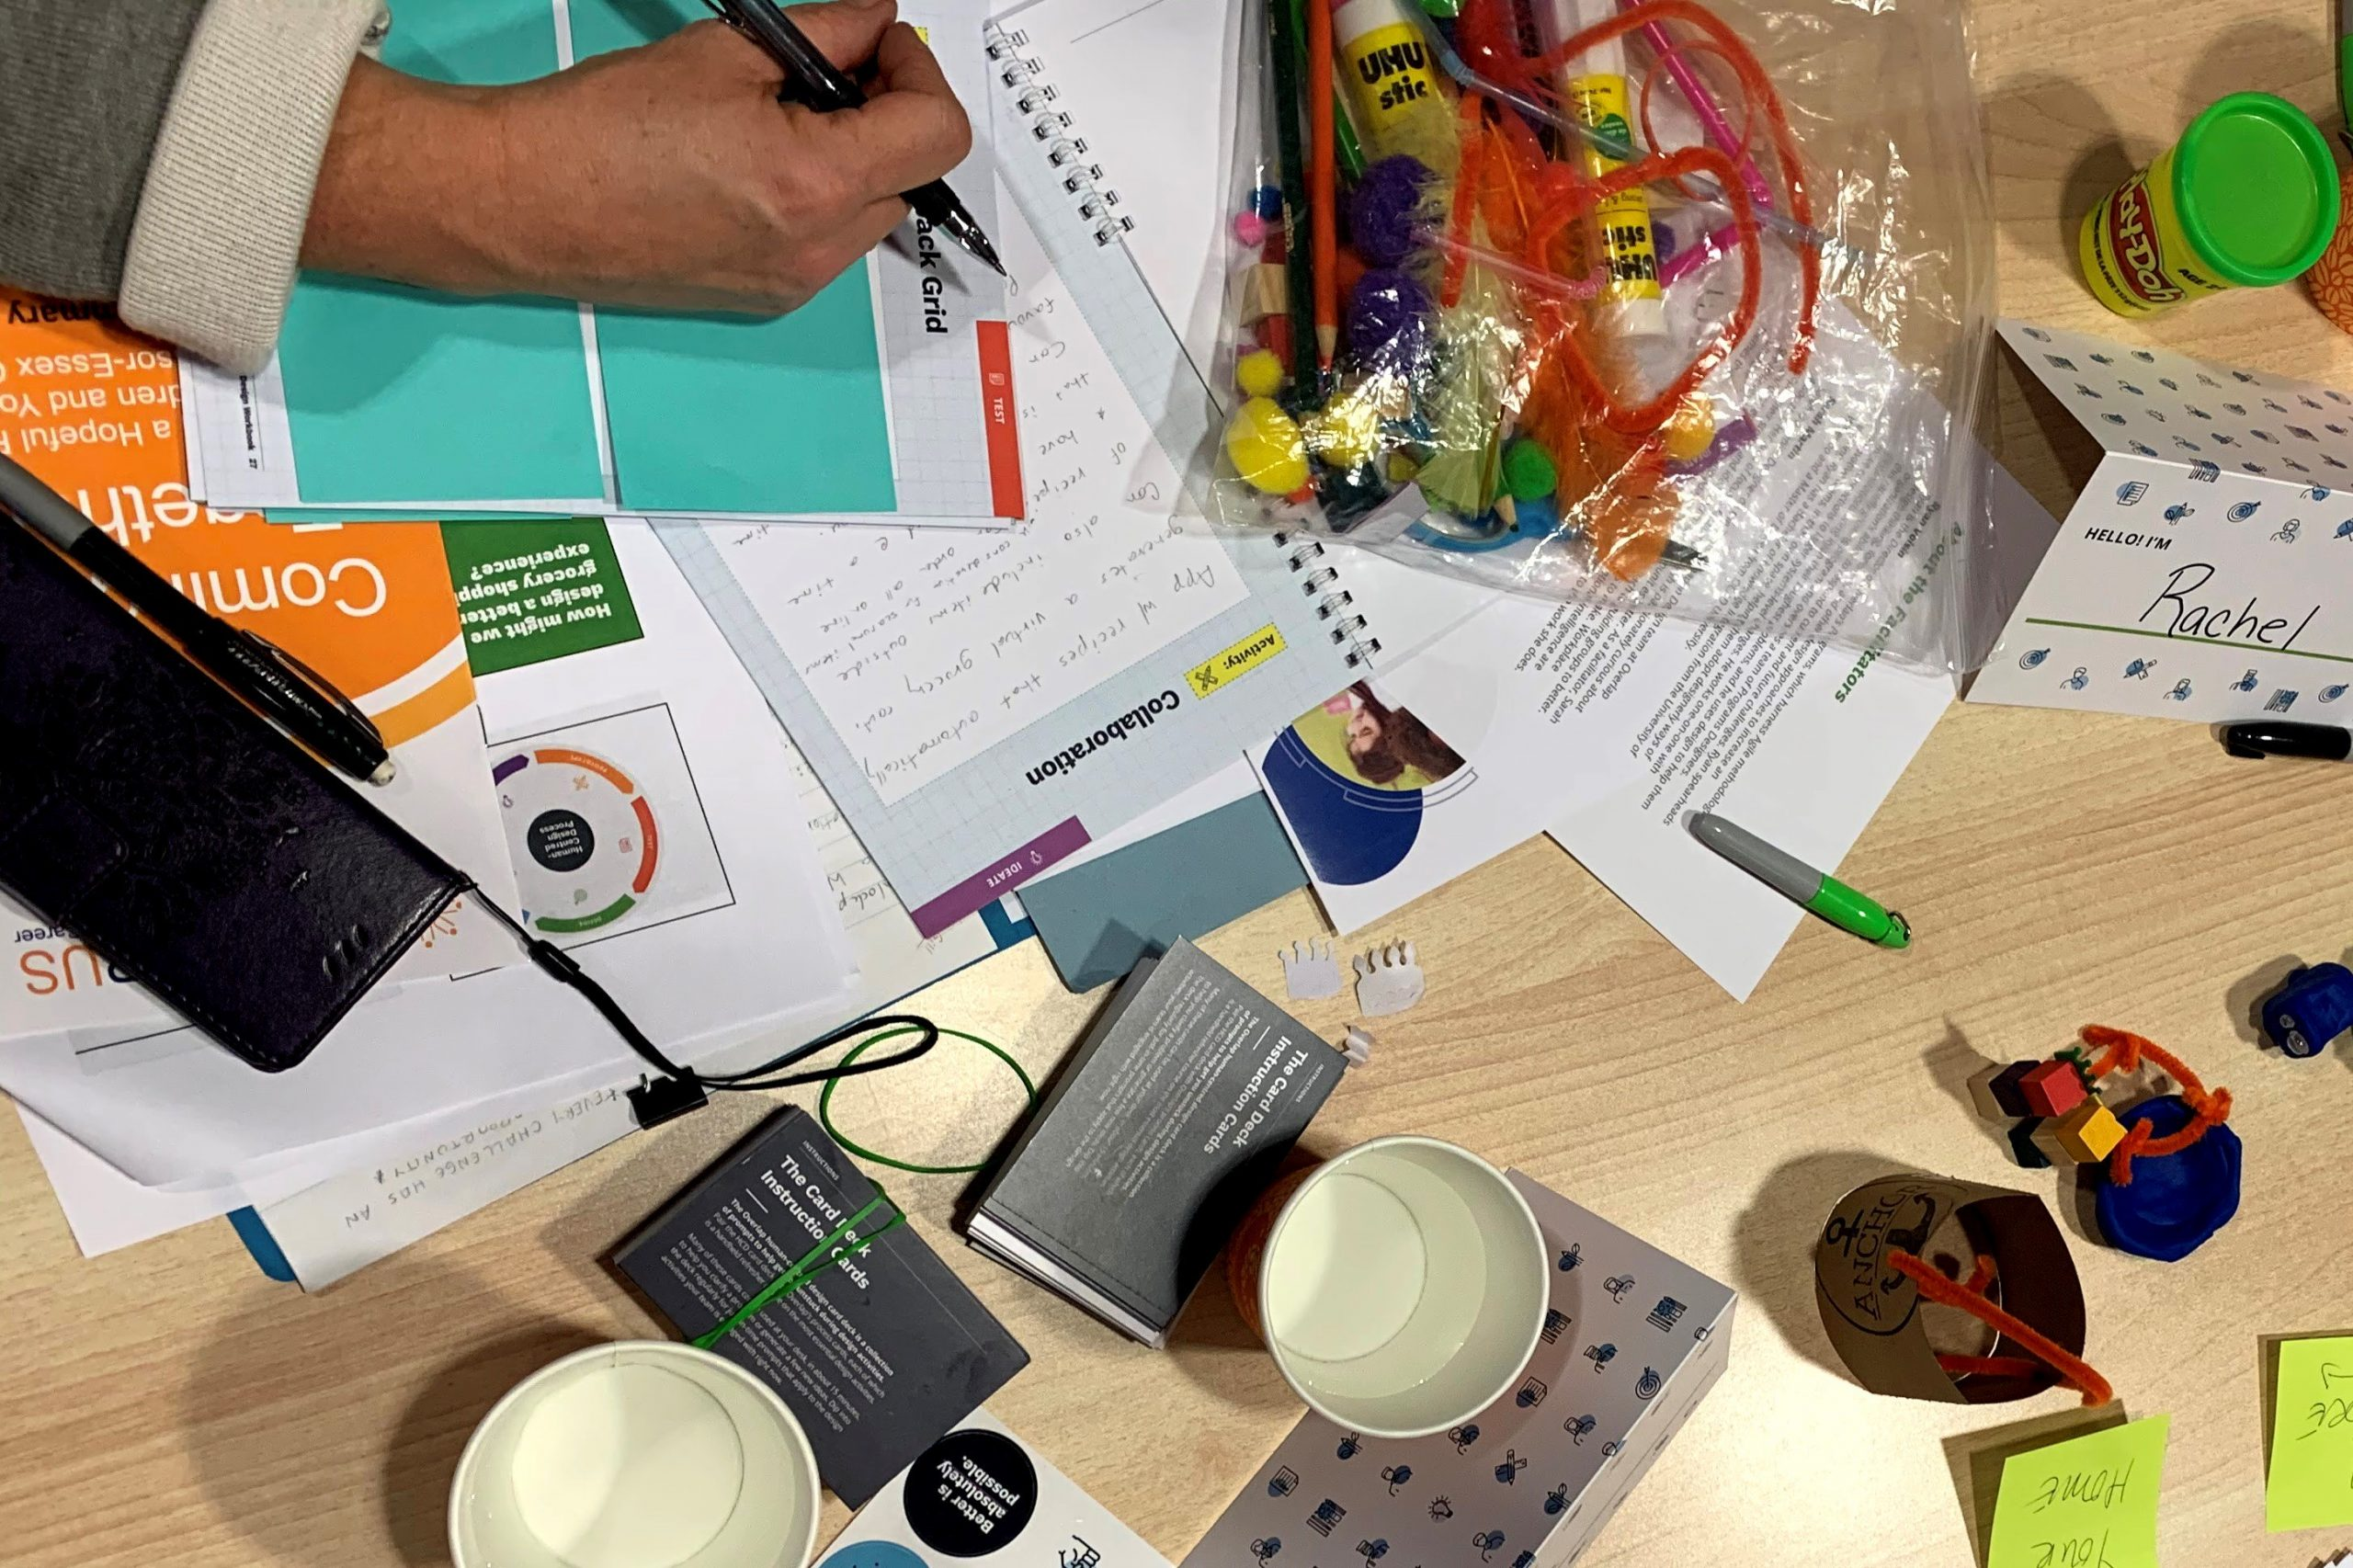 A table filled with training materials and a workbook where someone is taking notes.